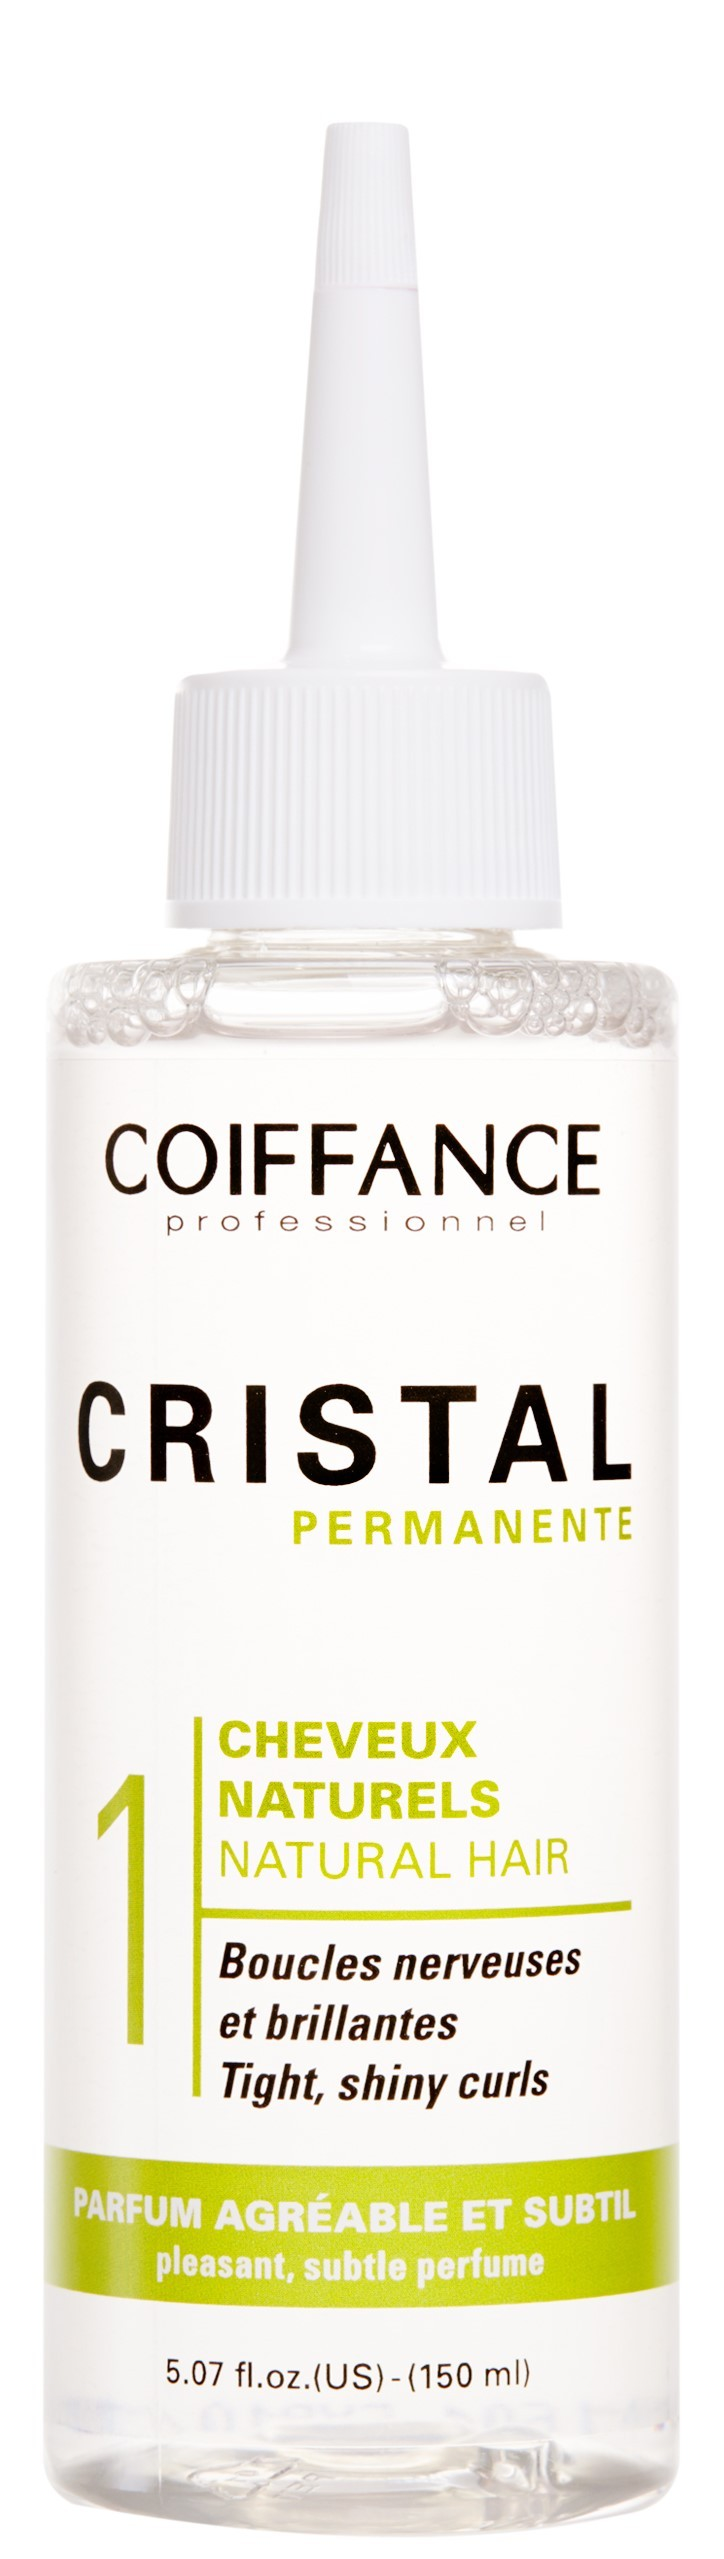 Coiffance -  Cristal Perm force 1 -  natural hair 150ML